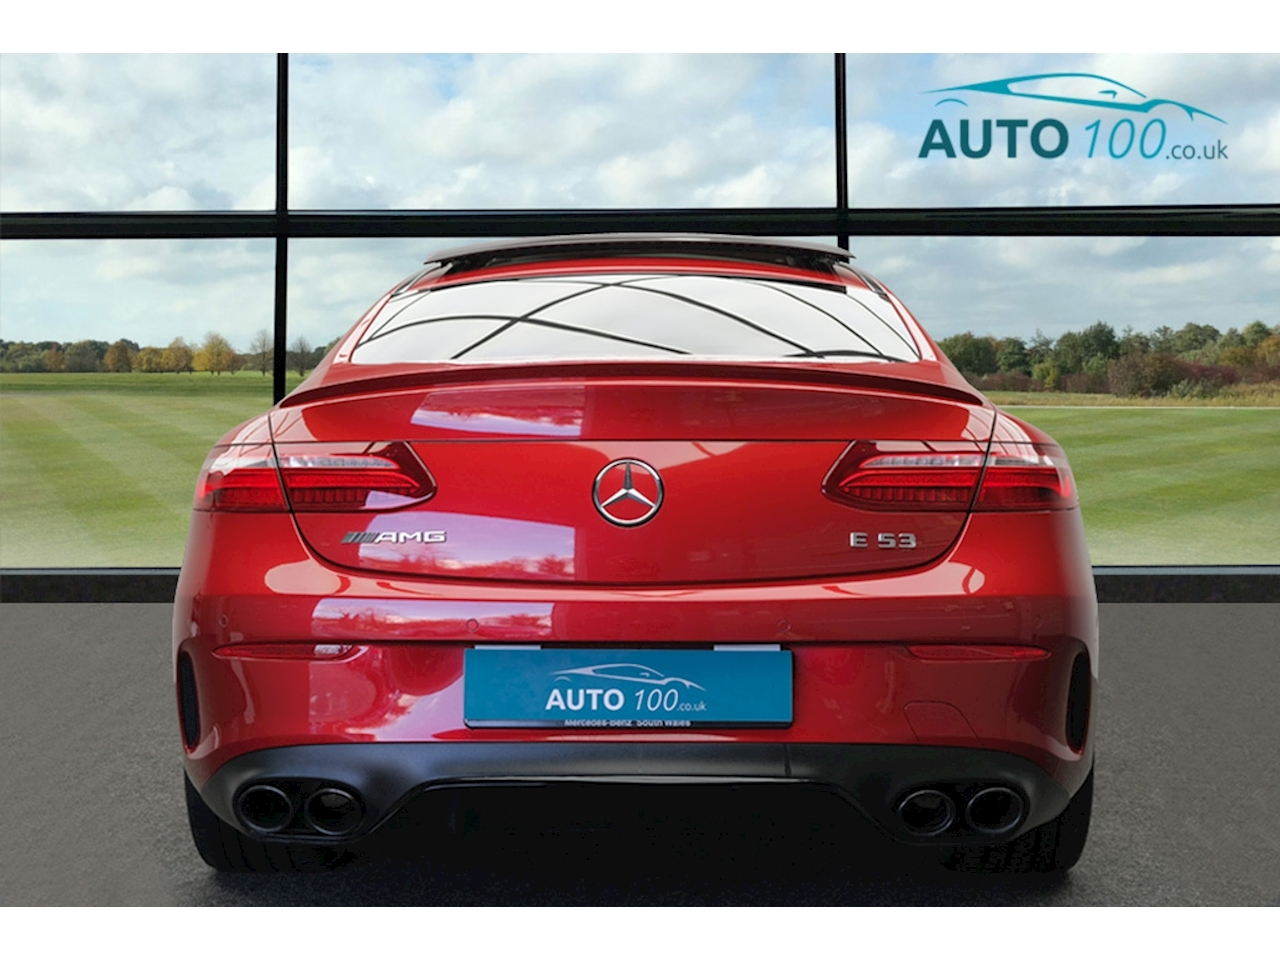 Mercedes-Benz 3.0 E53 EQ Boost AMG Coupe 2dr Petrol SpdS TCT 4MATIC+ (s/s) (457 ps)